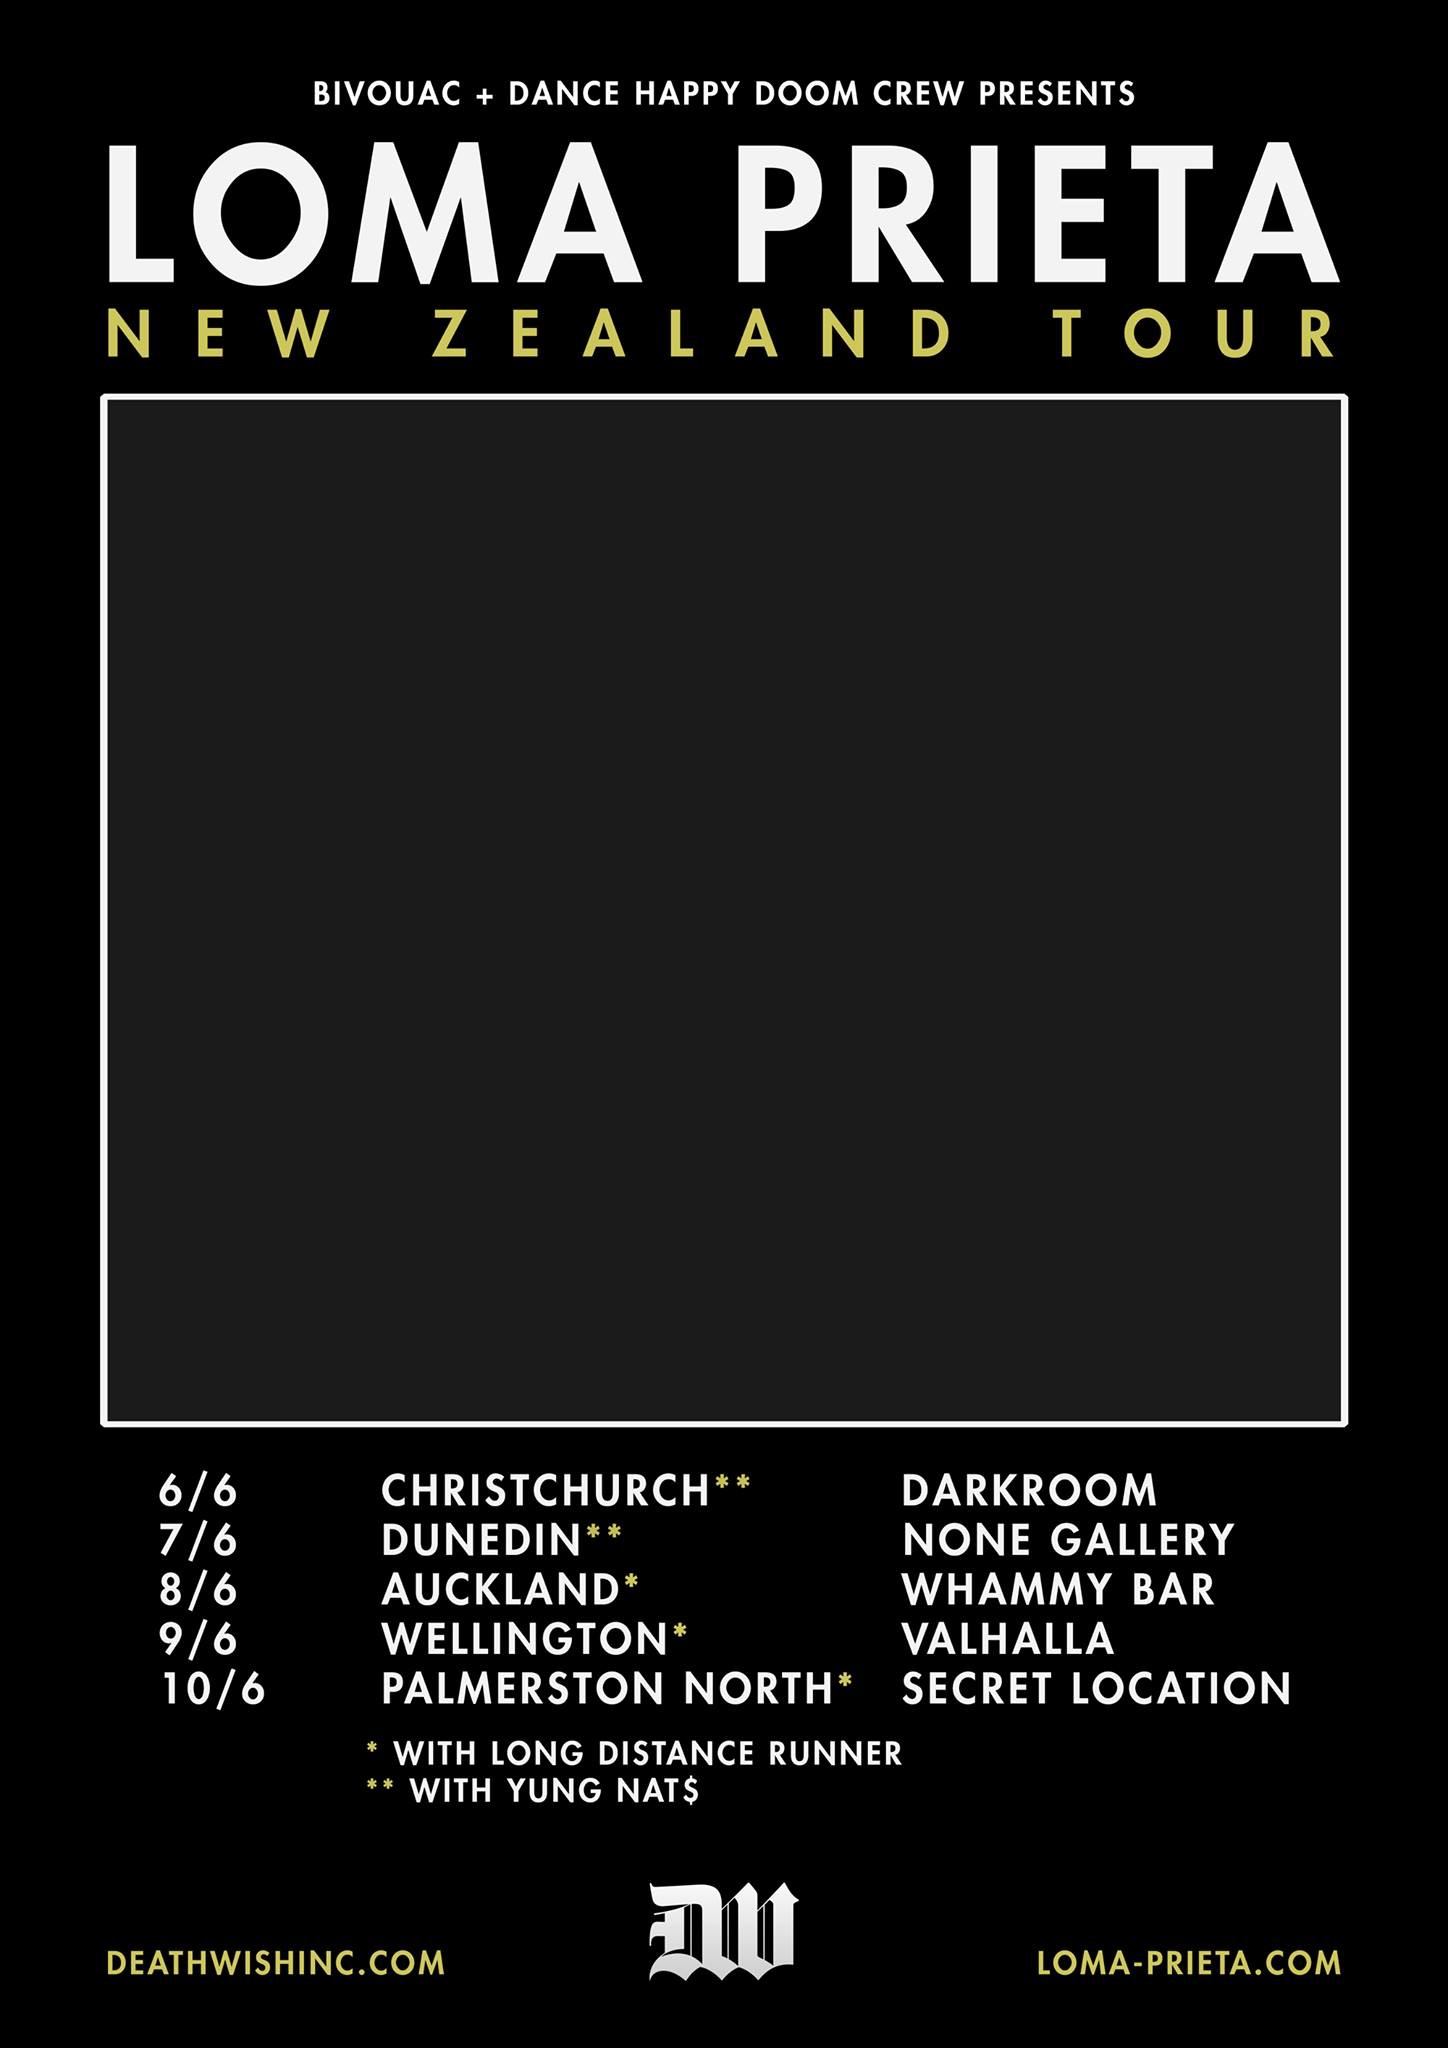 Loma Prieta New Zealand Tour - CANCELLED